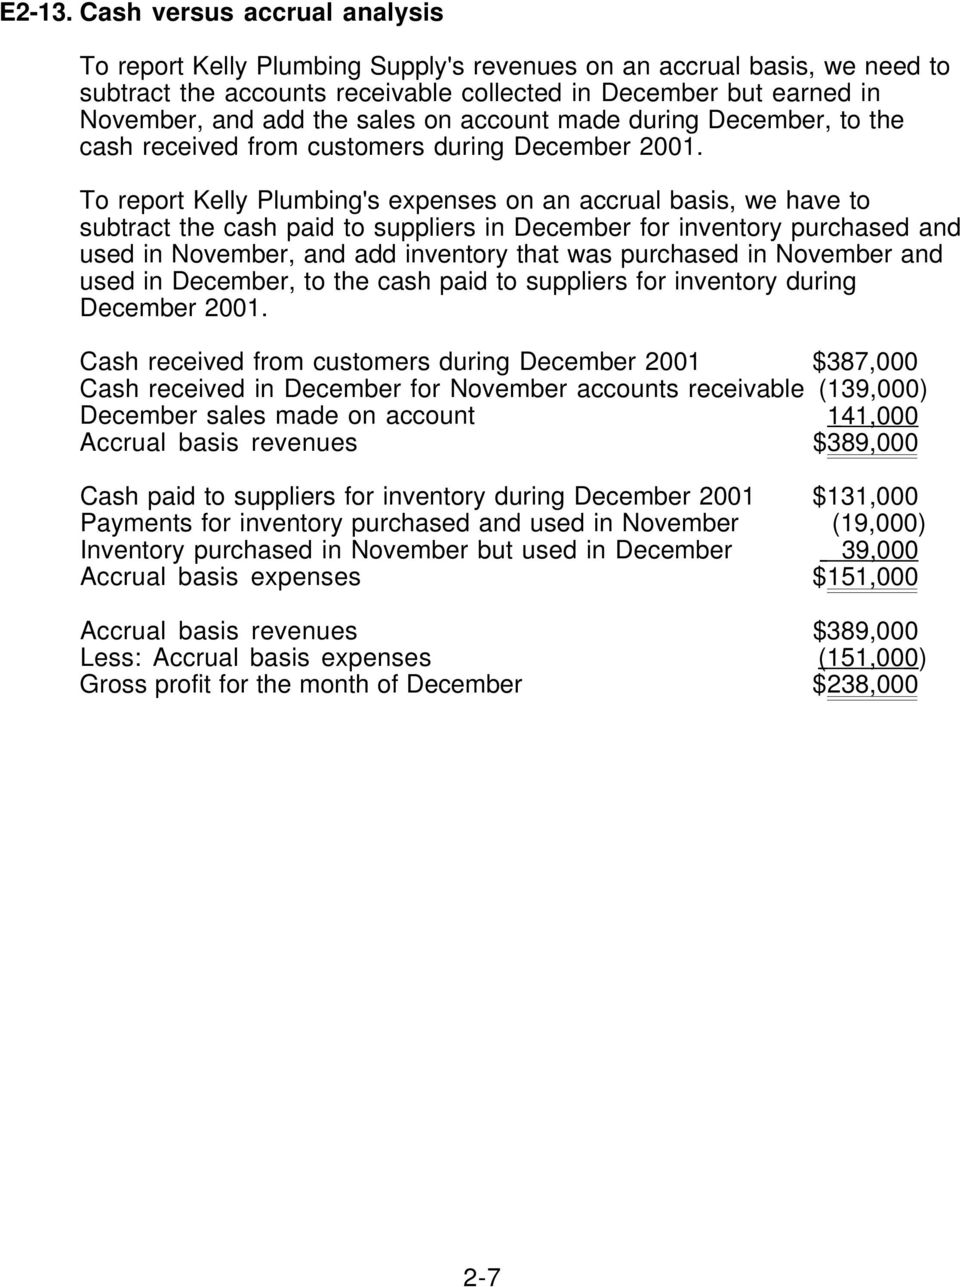 sales on account made during December, to the cash received from customers during December 2001.